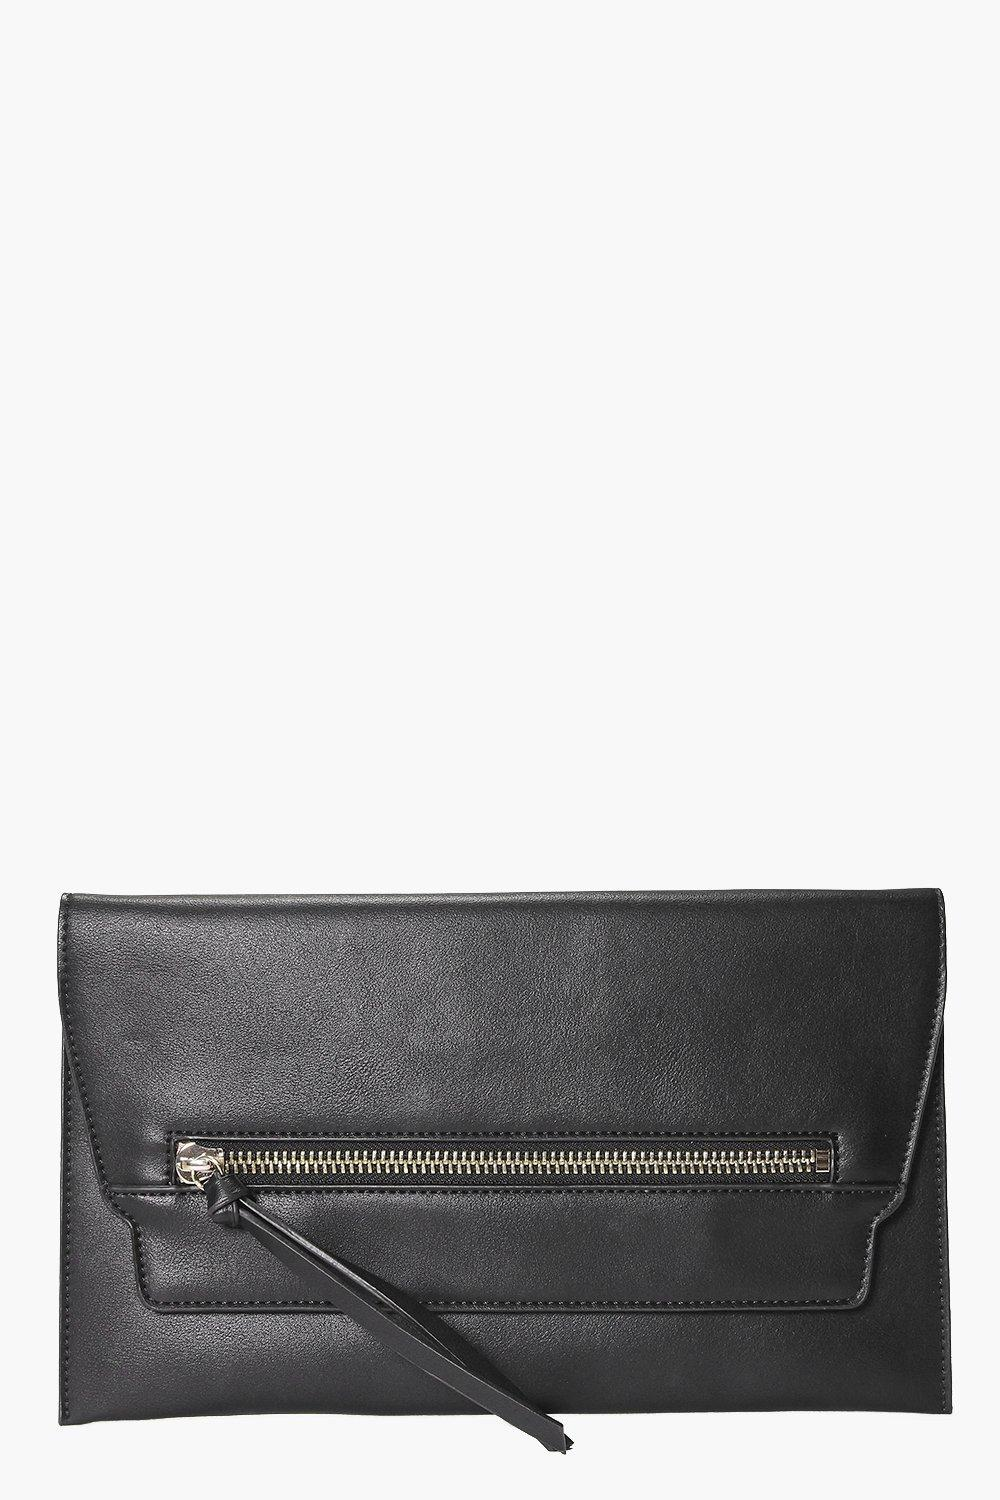 Zip Front Clutch Bag black